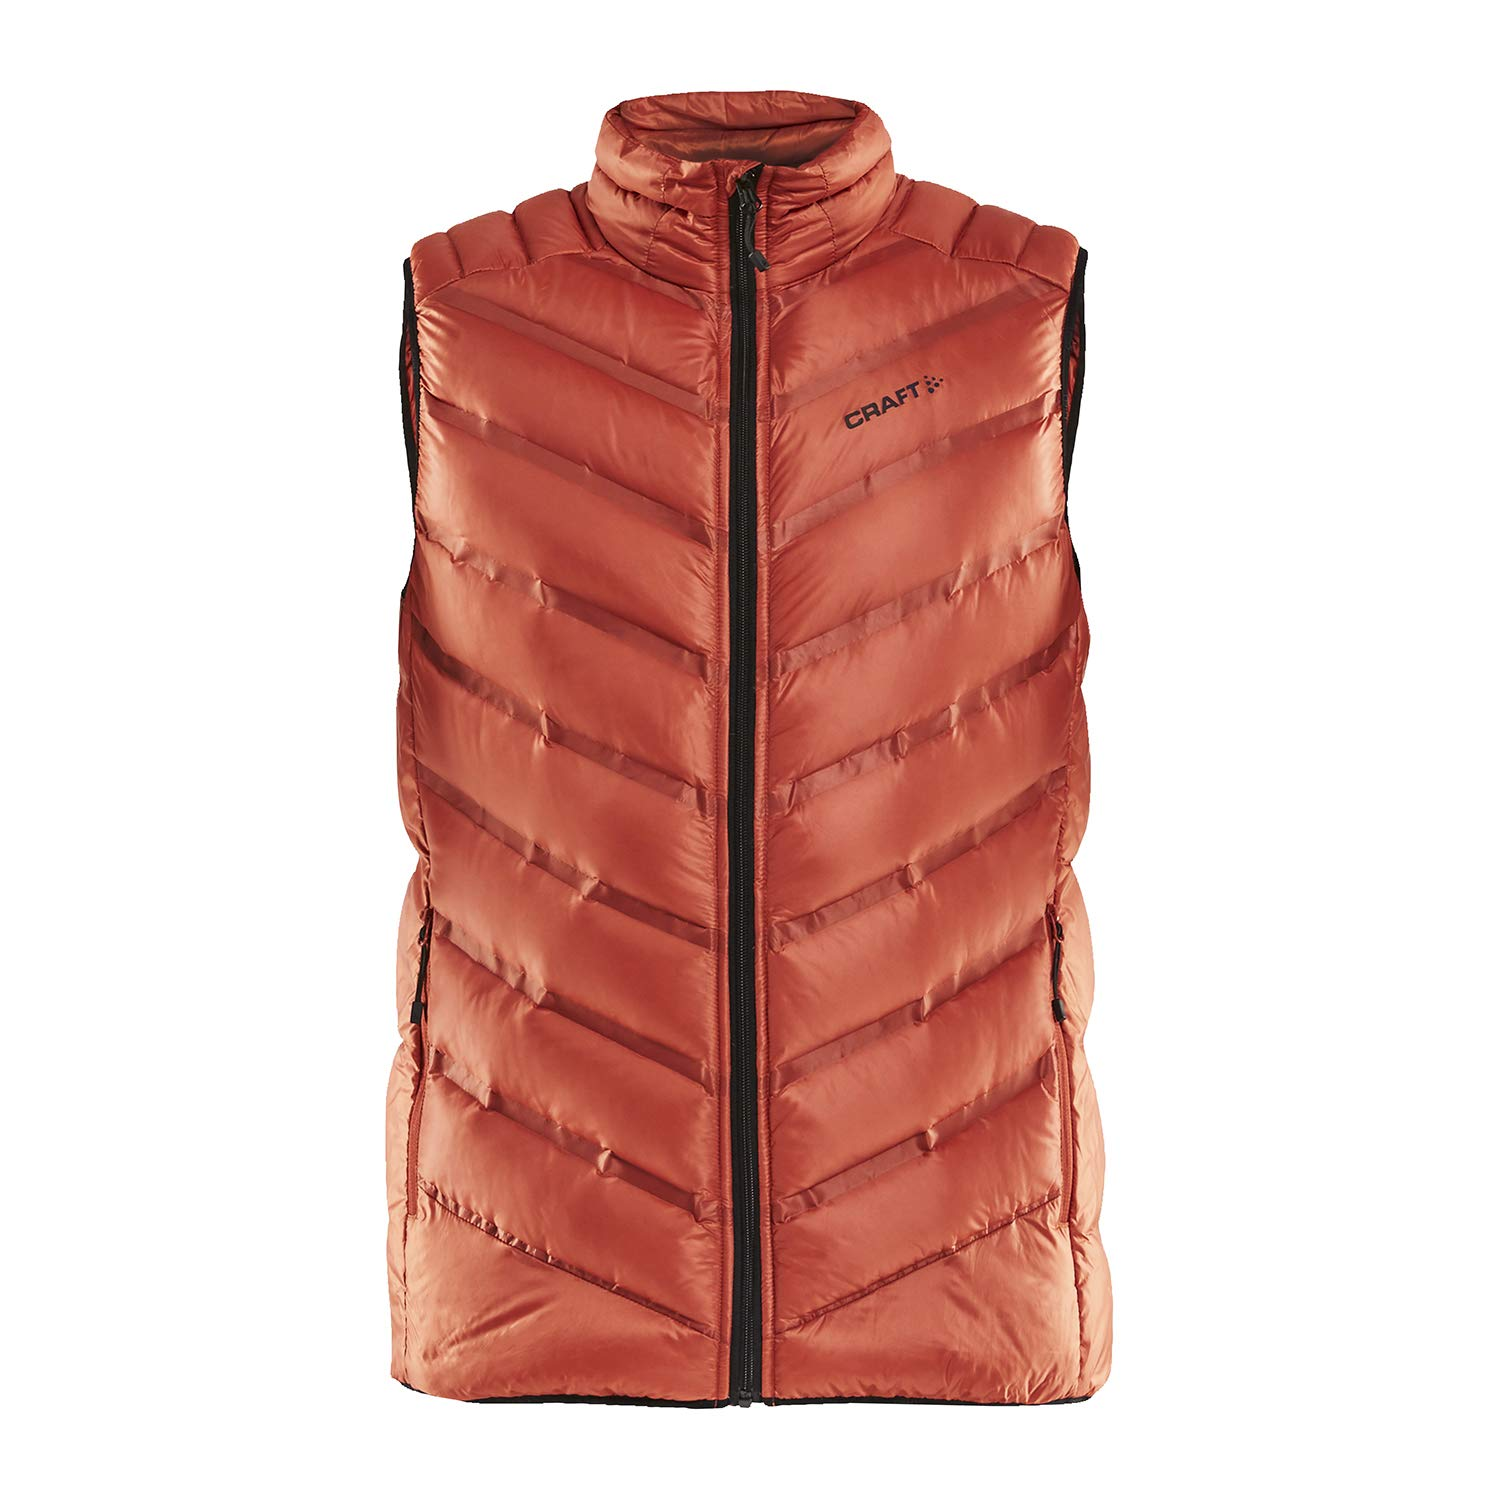 Craft Men's Light Down Vest- Packable, Thermo-Bonded Channels